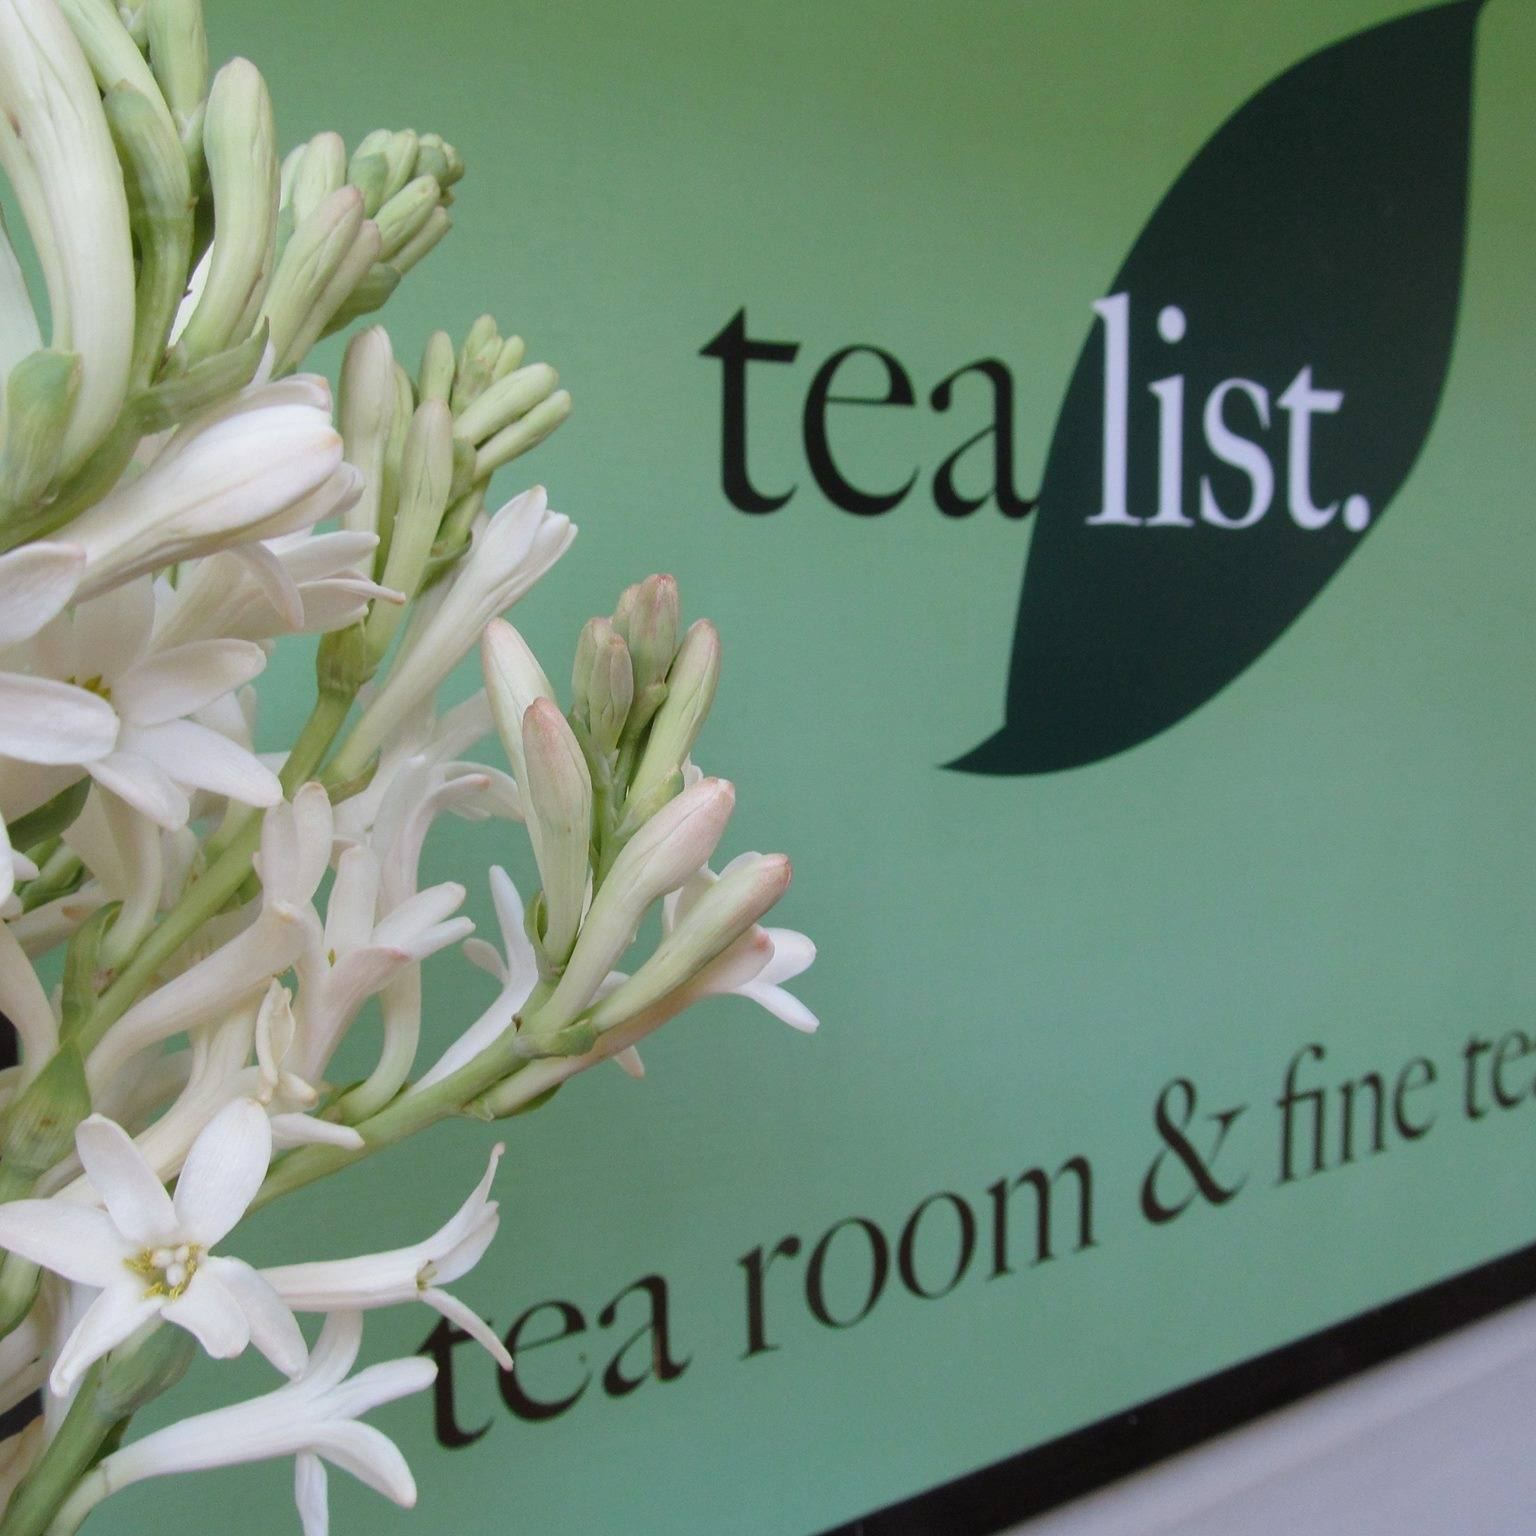 Tea List front sign with flowers